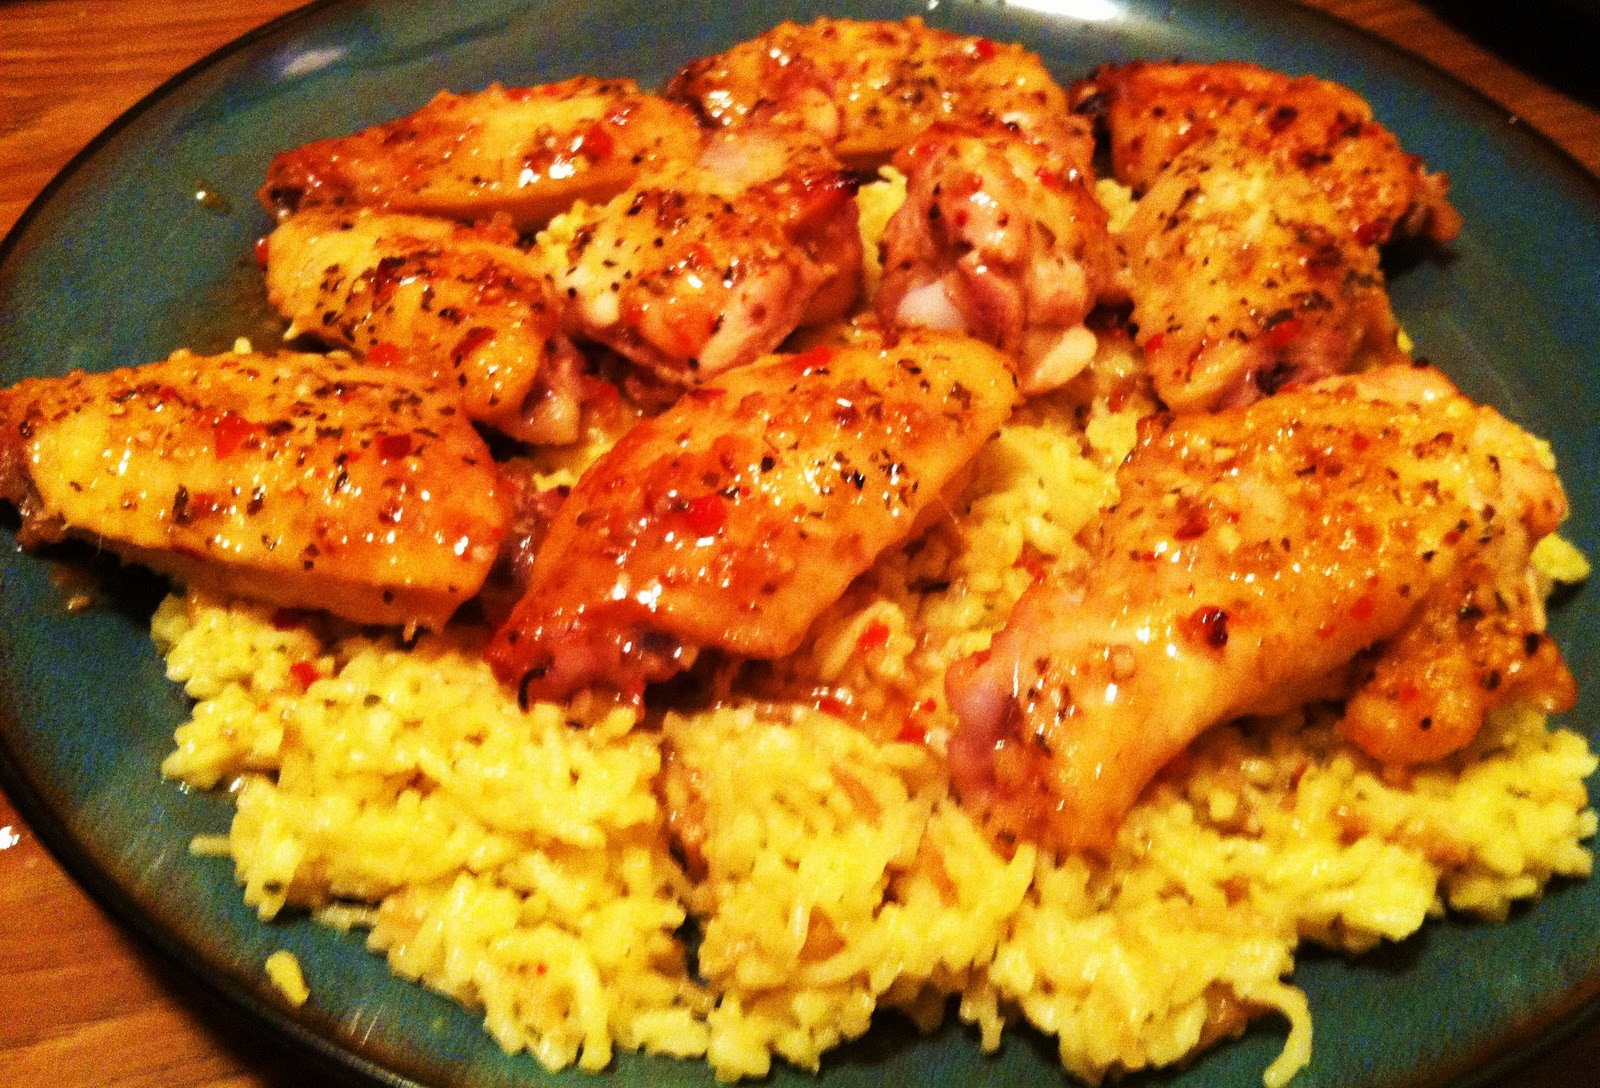 EATS: Italian Baked Chicken Wings and Rice